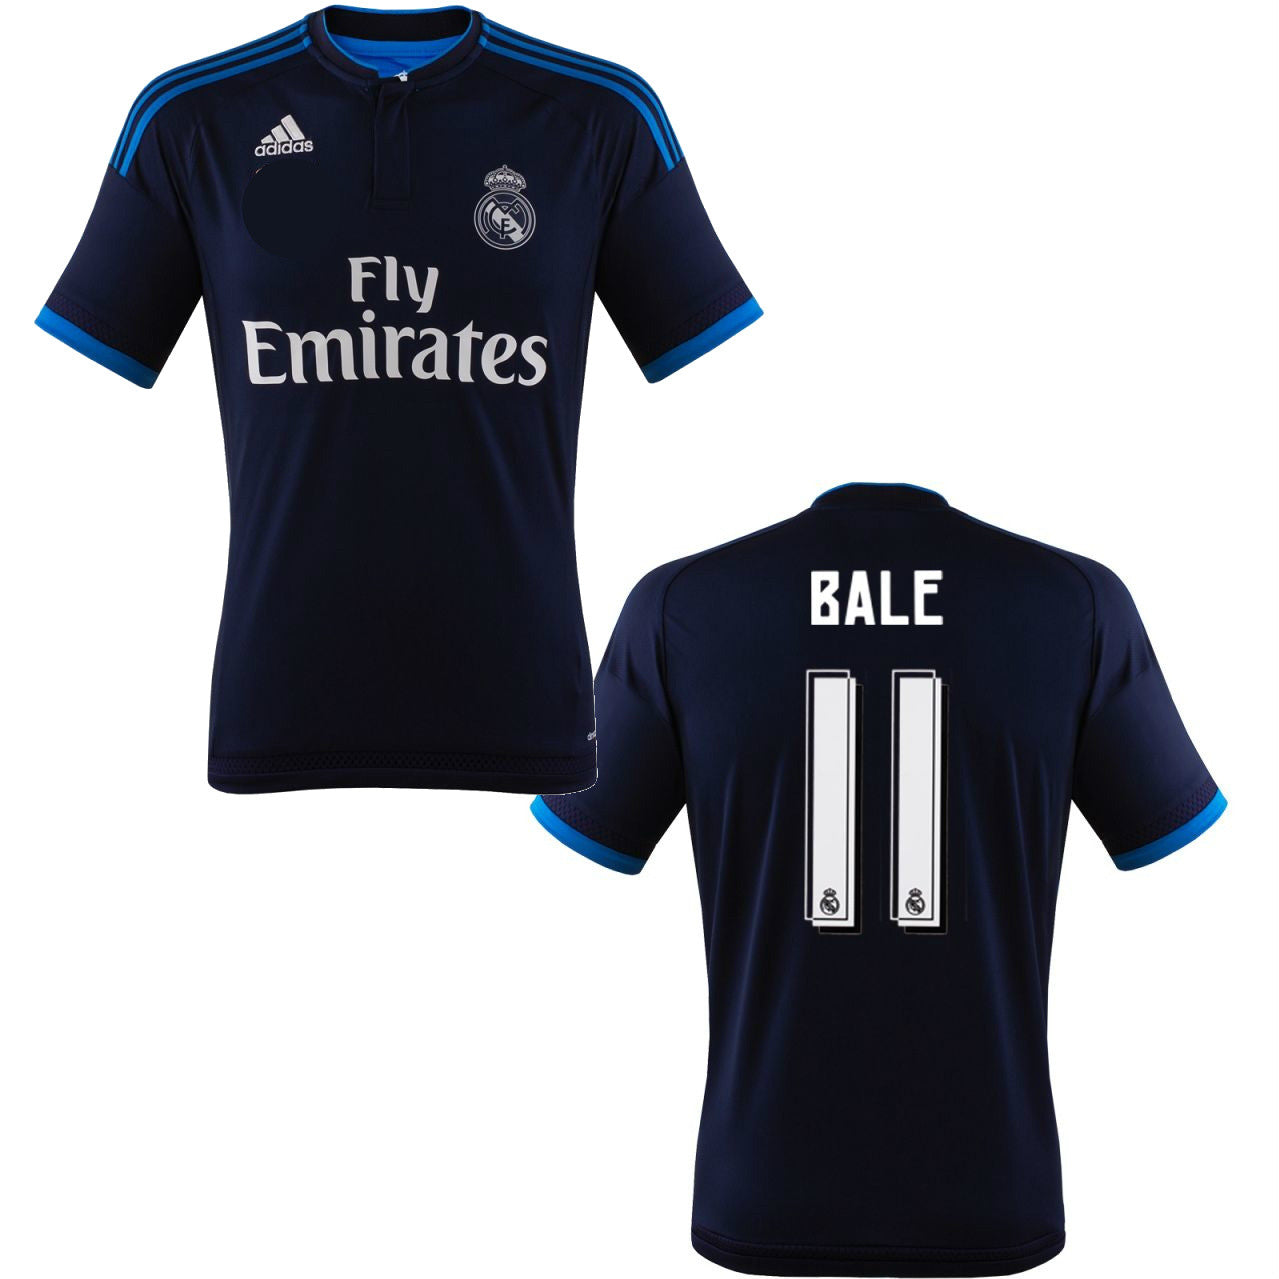 Bale Jersey Real Madrid 3rd 2015 2016 , bale jersey real madrid - Adidas, G2G Sport Chicago